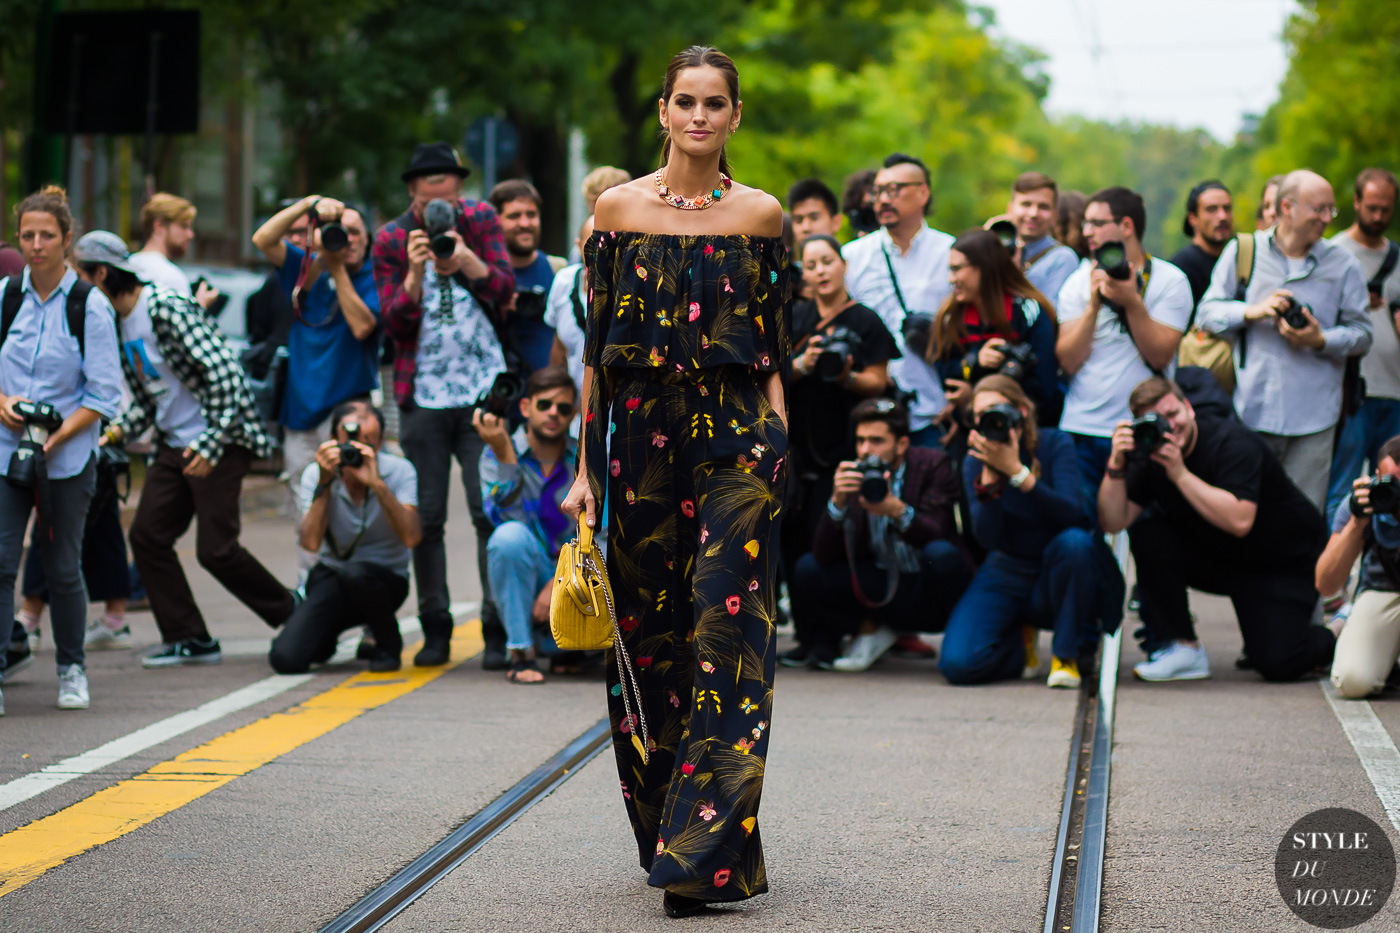 izabel-goulart-by-styledumonde-street-style-fashion-photography